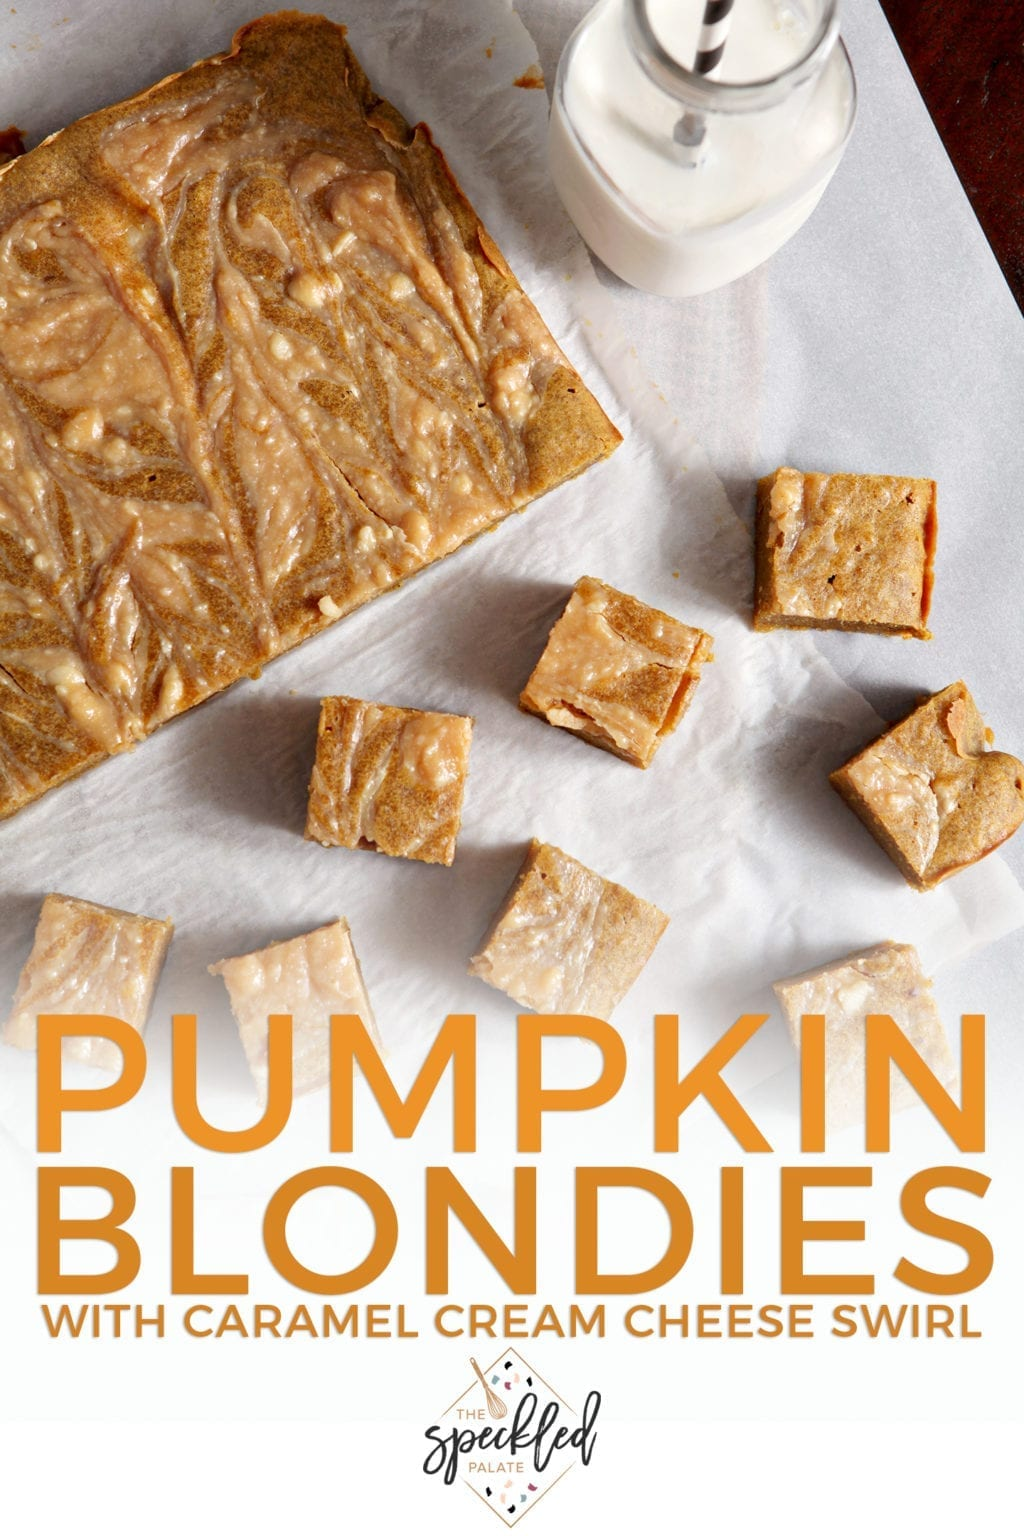 Overhead image of sliced Pumpkin Blondies with Caramel Cream Cheese Swirl, with Pinterest text